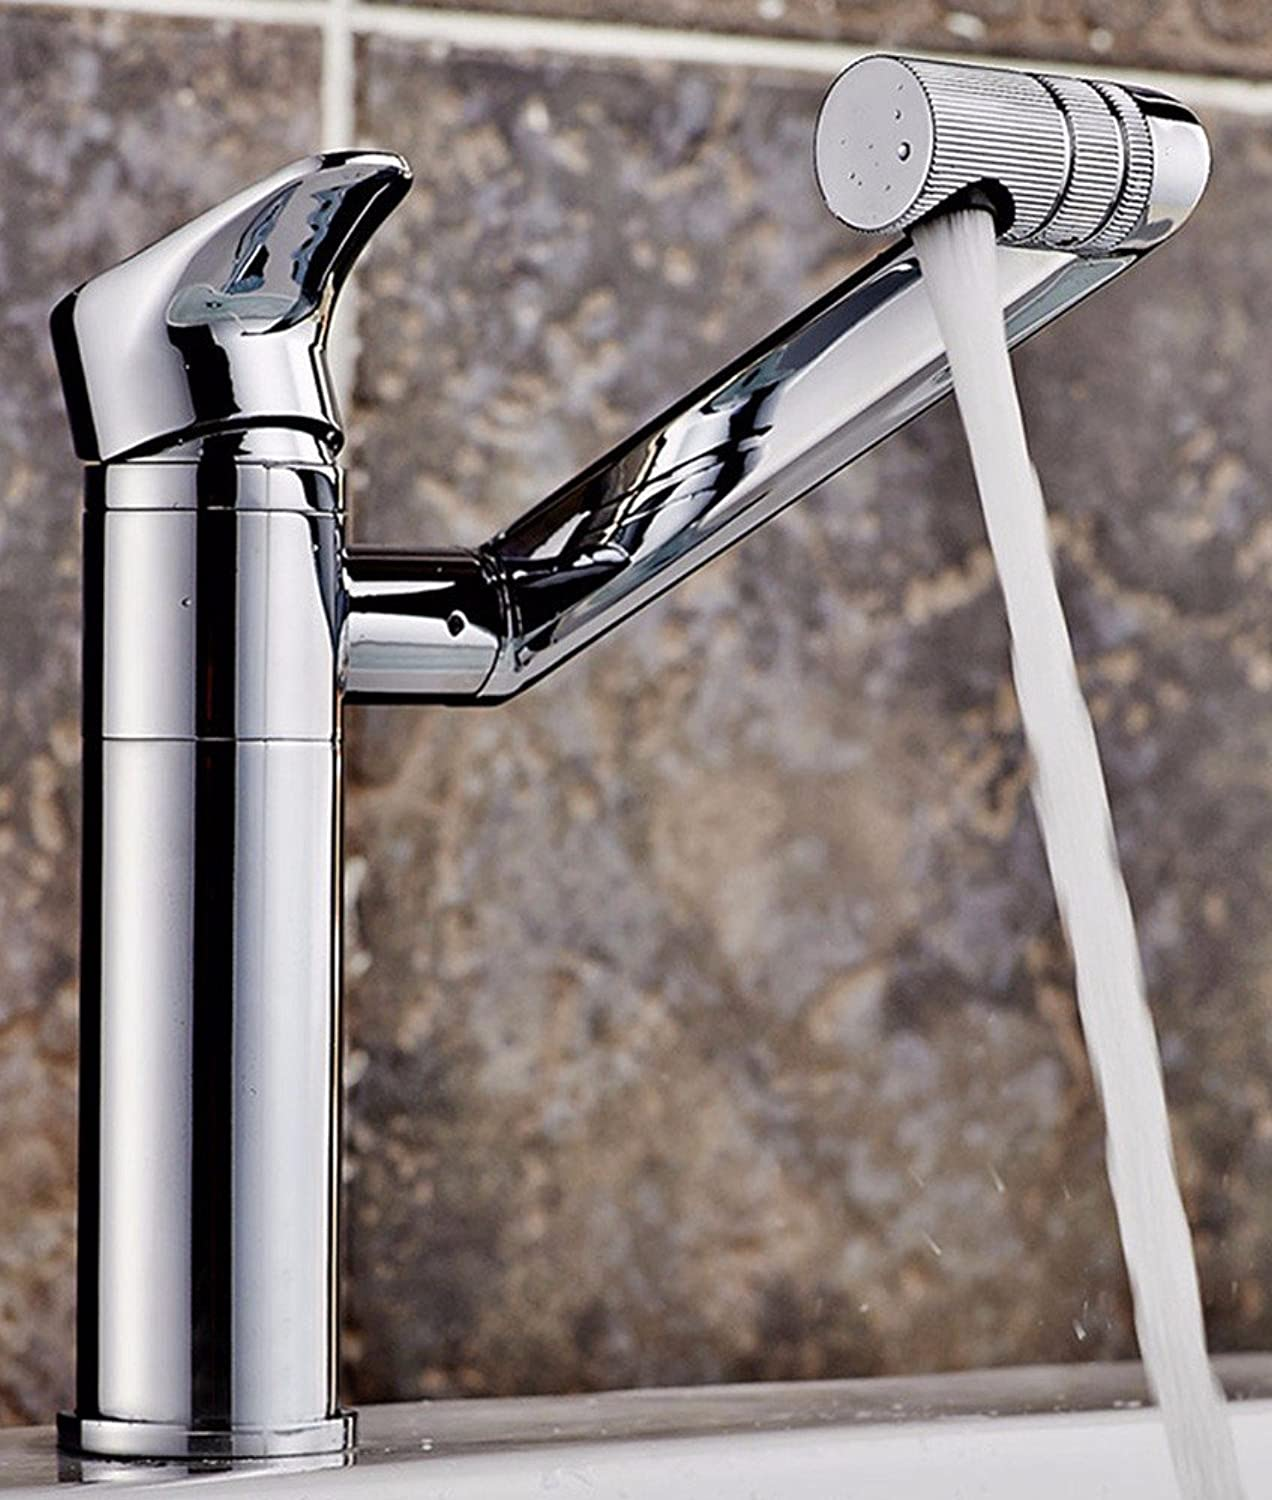 Hlluya Professional Sink Mixer Tap Kitchen Faucet Retro, copper, and can be redated, sink faucet,G